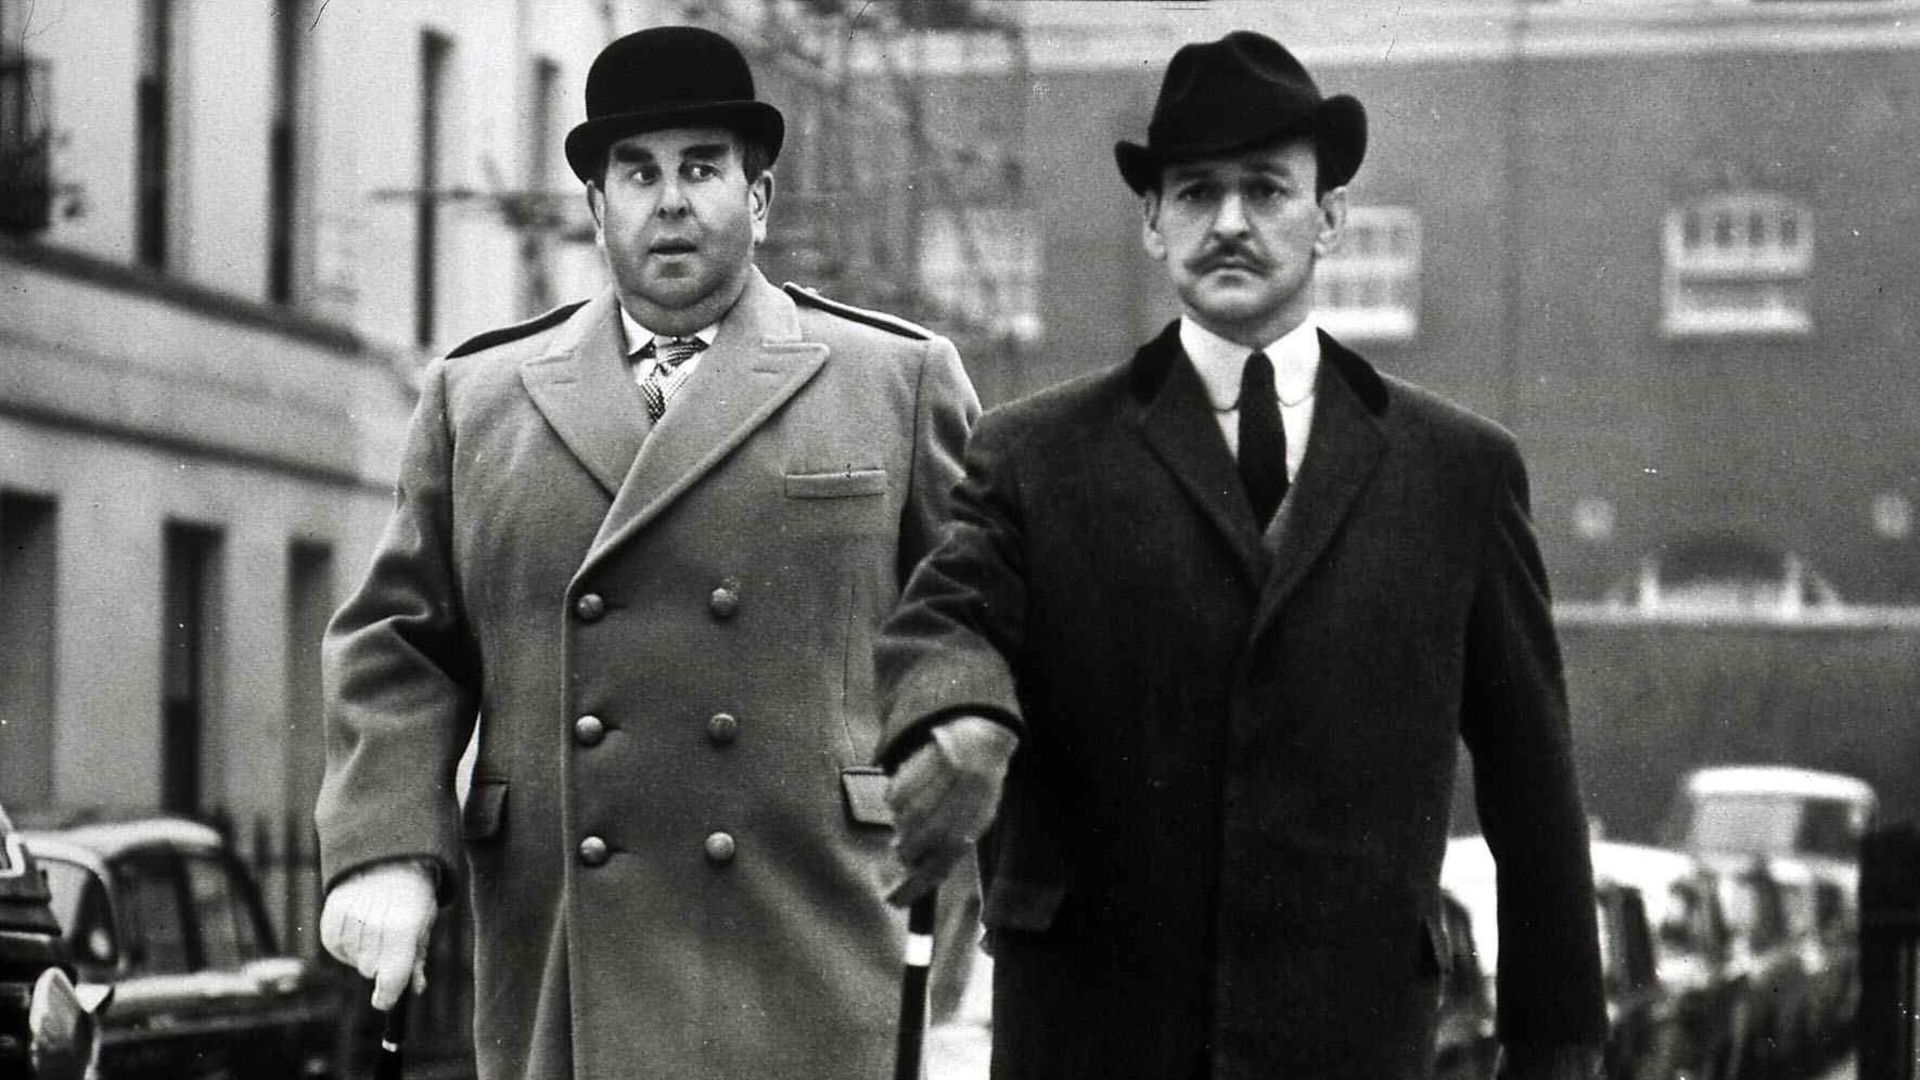 Tony Randall (right) as Poirot in The Alphabet Murders. - Credit: FilmPublicityArchive/United Arch